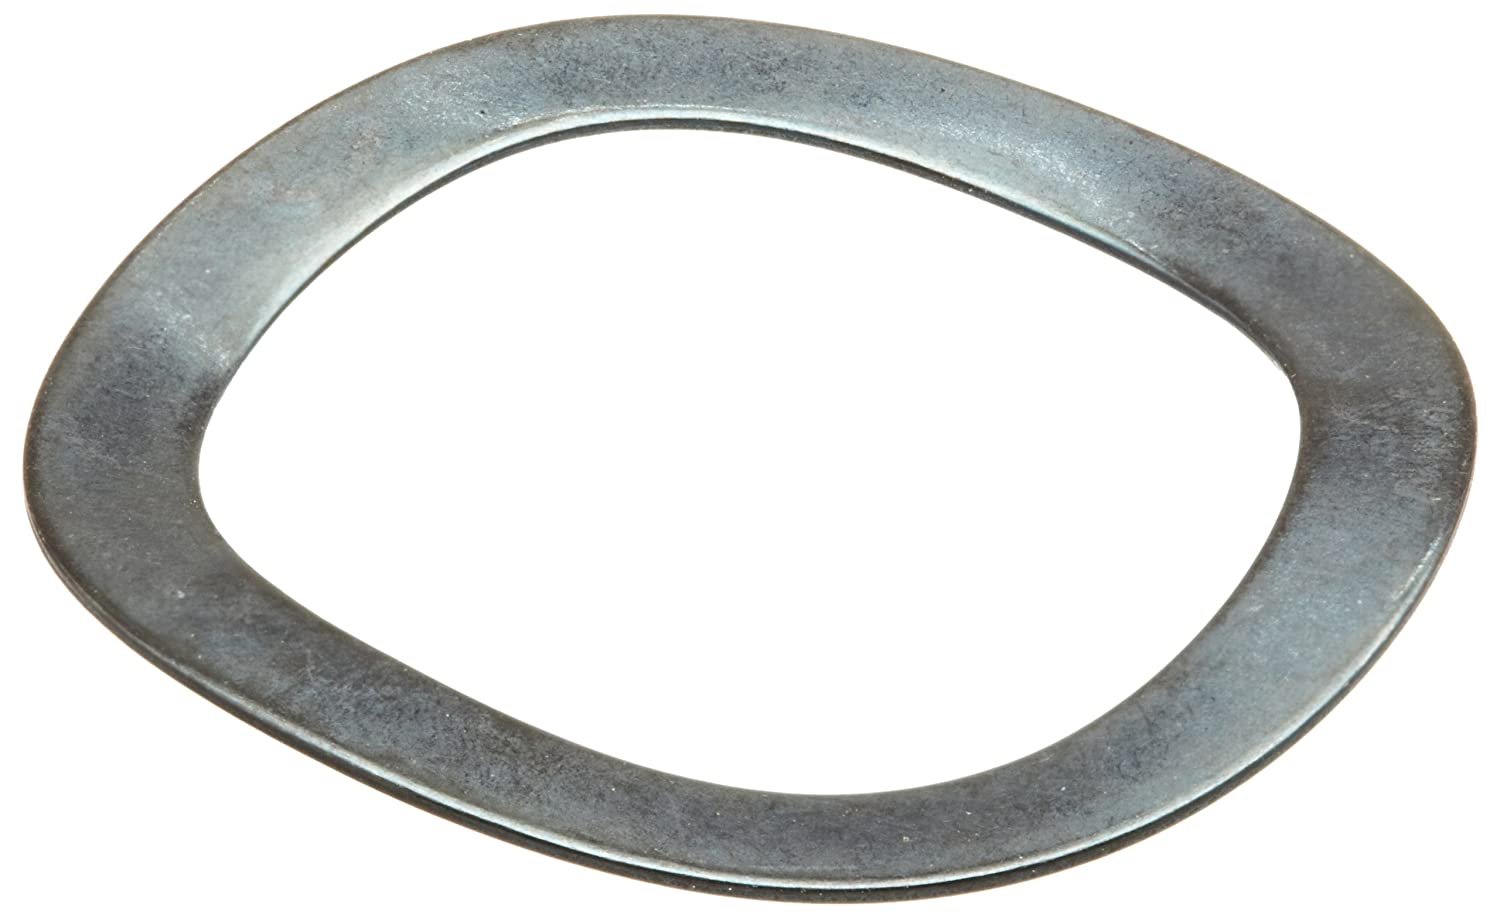 3 Waves Inch Wave Washers 0.018 Thick 0.055 Compressed Height High Carbon Steel 20lbs Load, 1.239 ID 1.593 OD Pack of 10